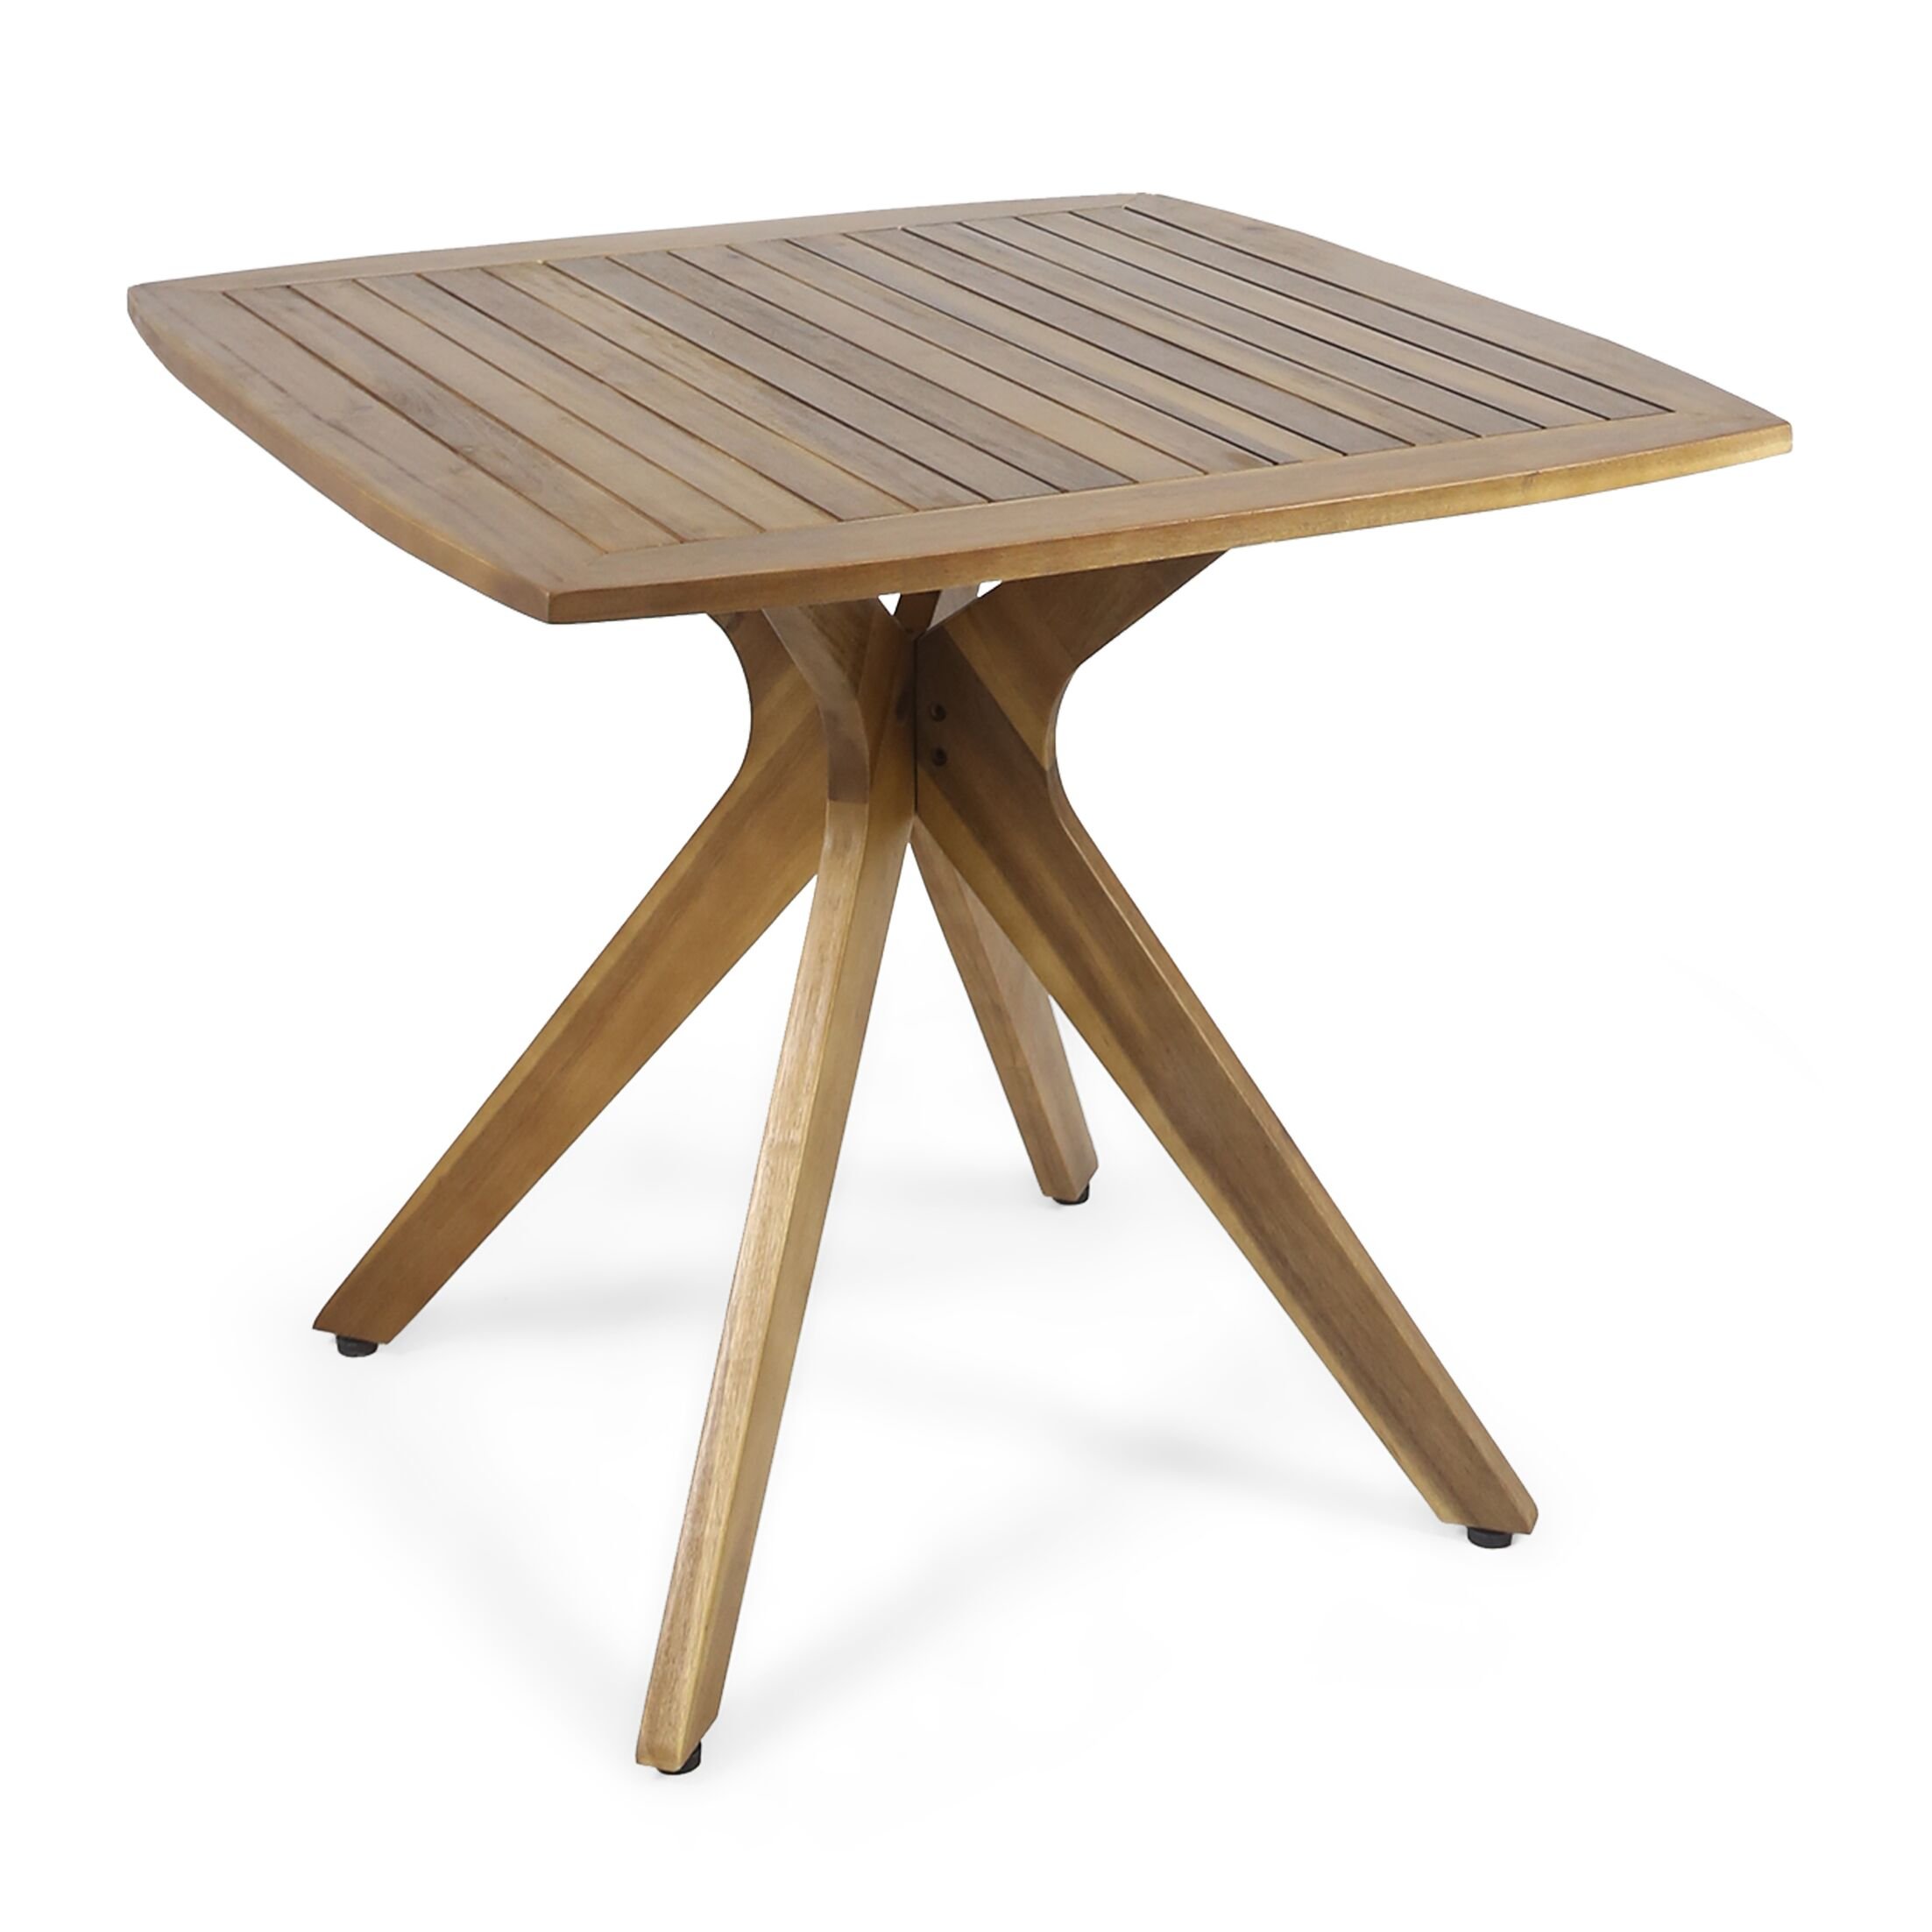 Pals Wooden Dining Table